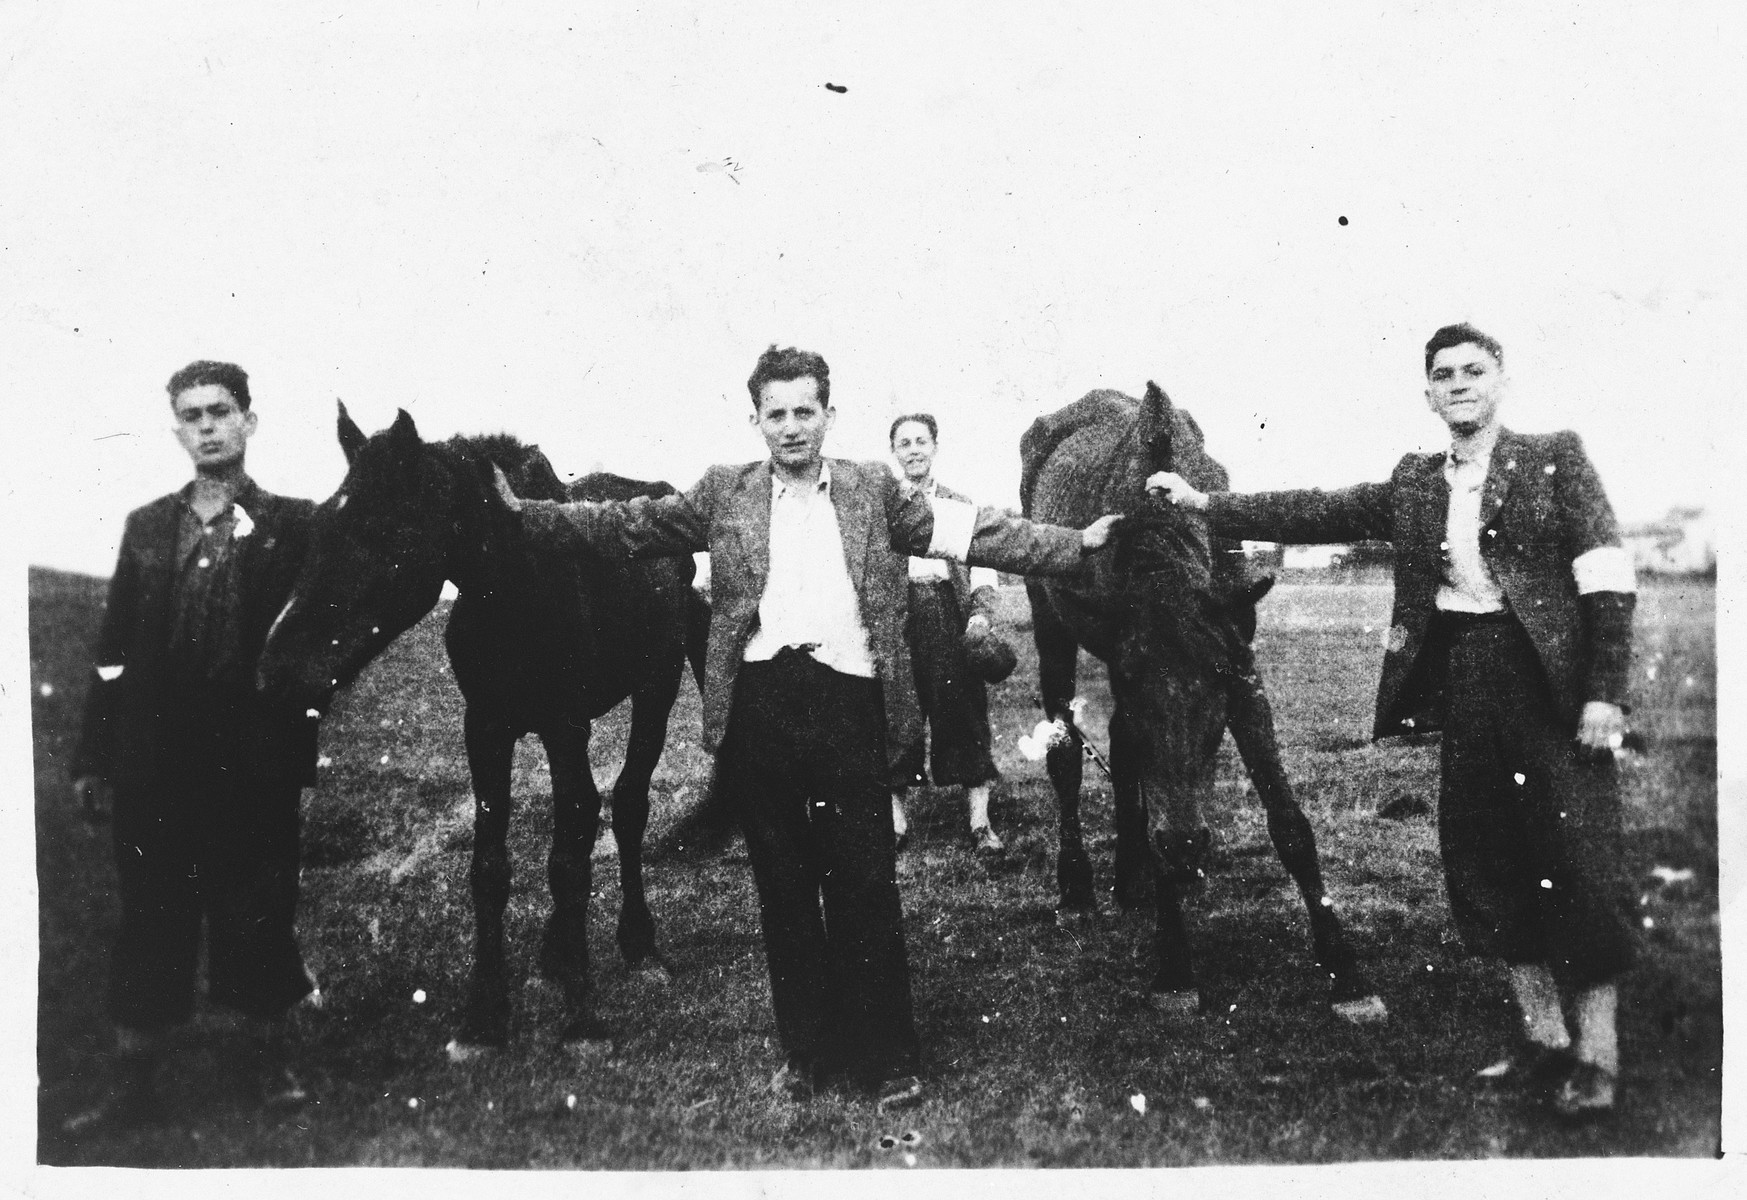 Jewish youth wearing armbands pose with horses in Bedzin, Poland.  Among those pictured is Jacob Bronner.